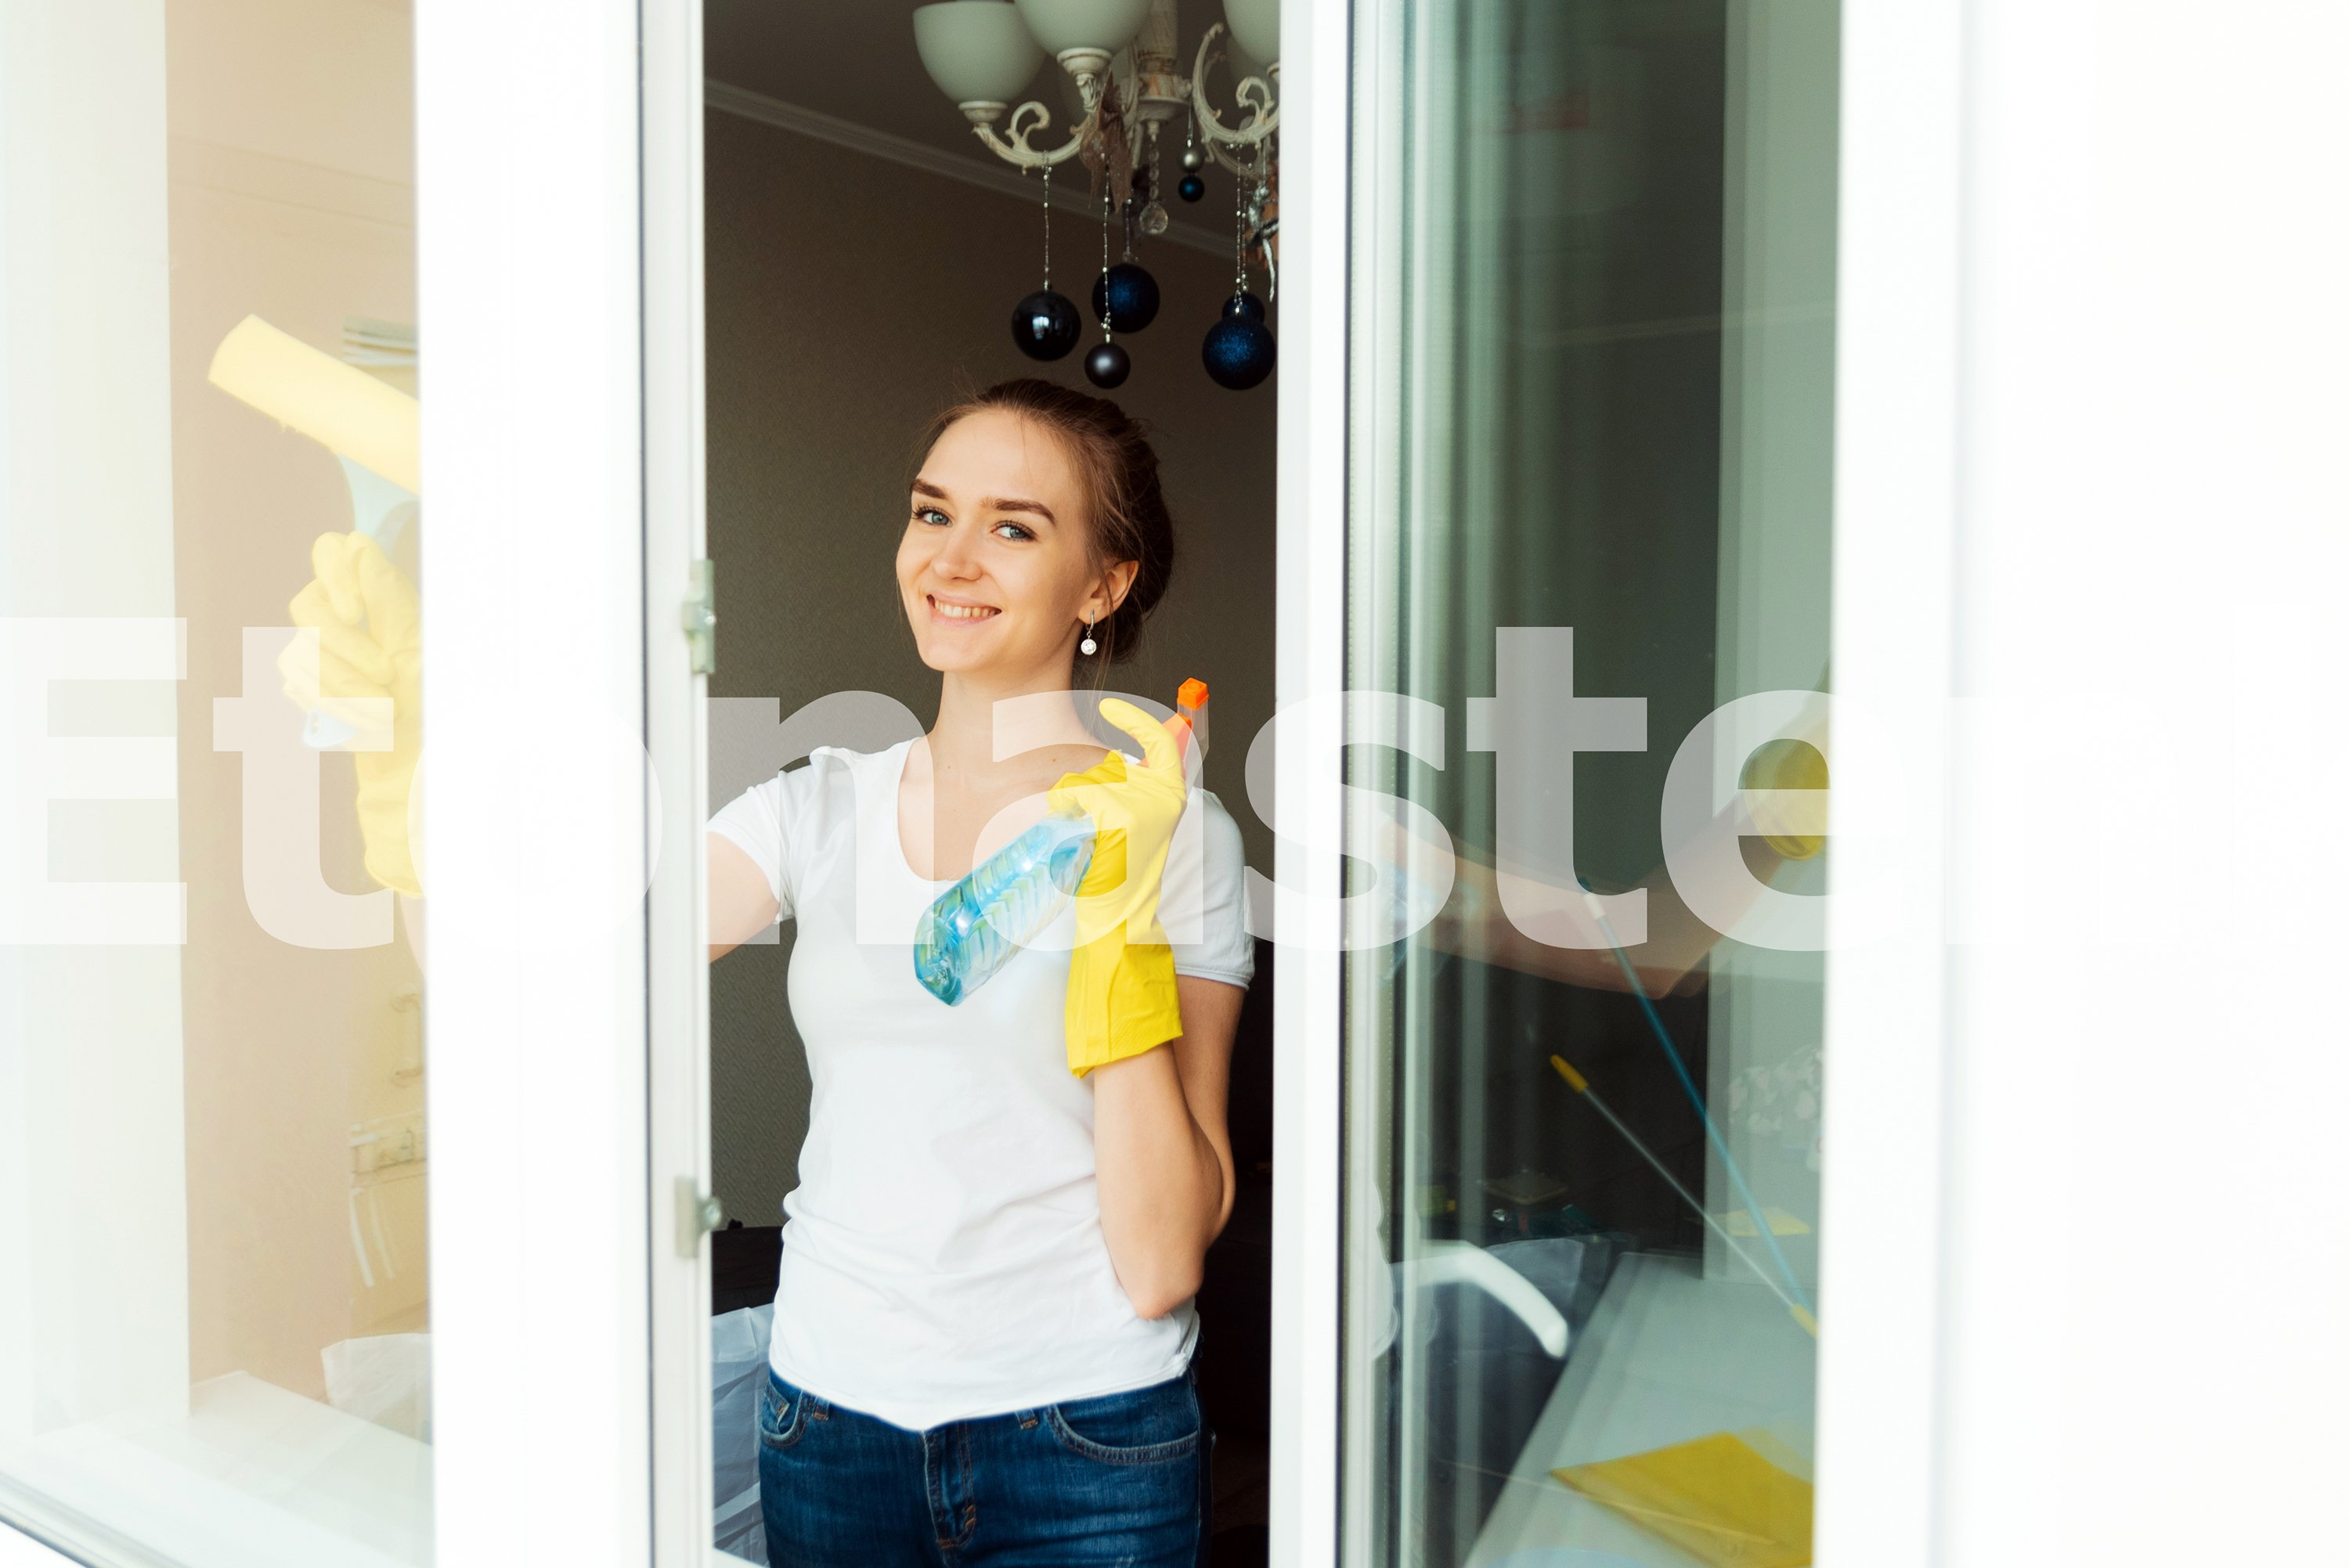 A cute adult female cleaning company worker wipes windows example image 1